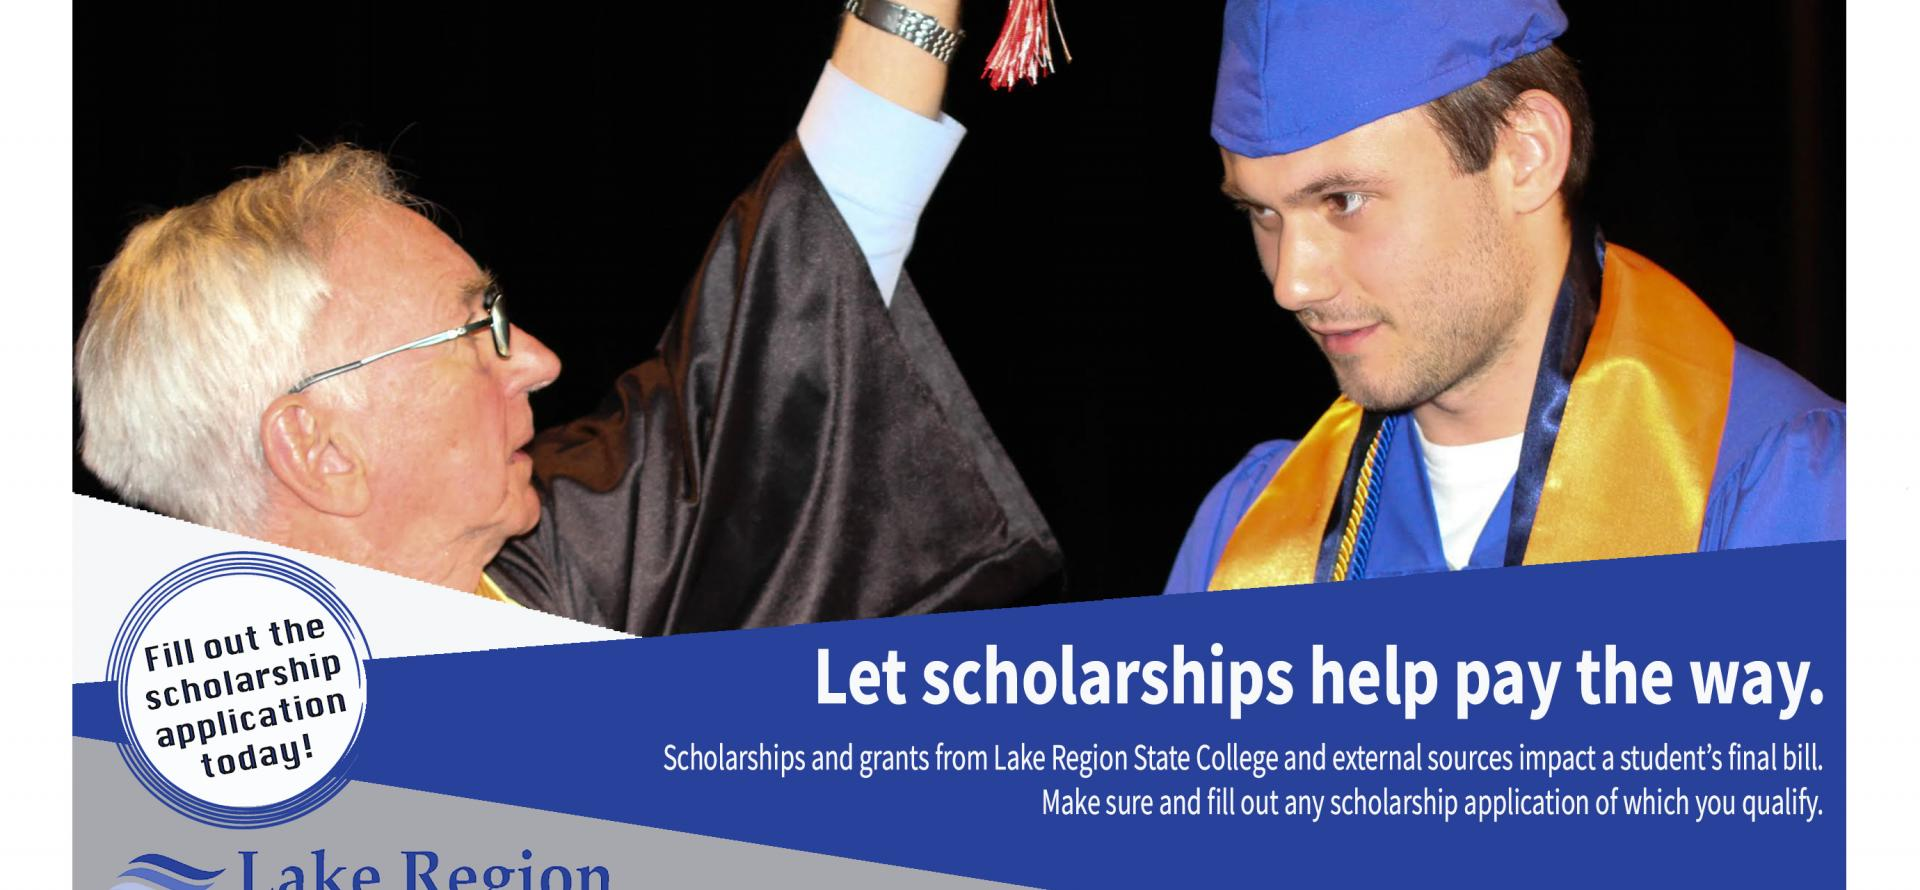 Scholarship application open for students